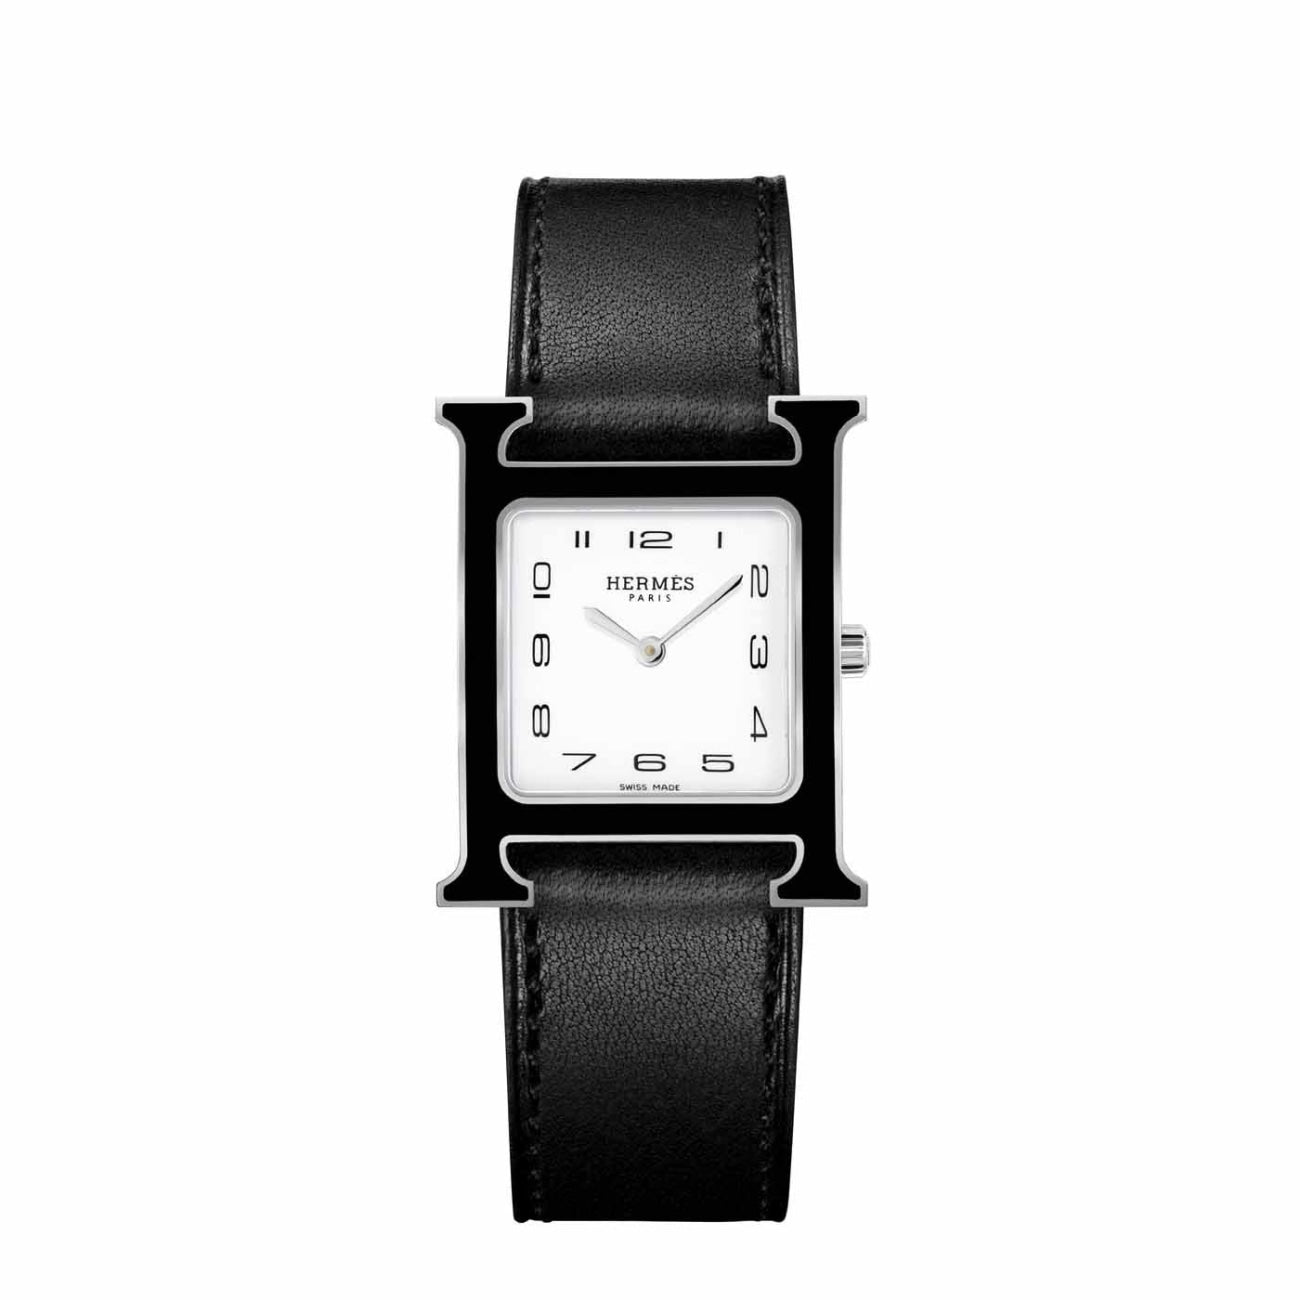 Hermès Watches - Heure H Watch 26 x 26 mm | Manfredi Jewels